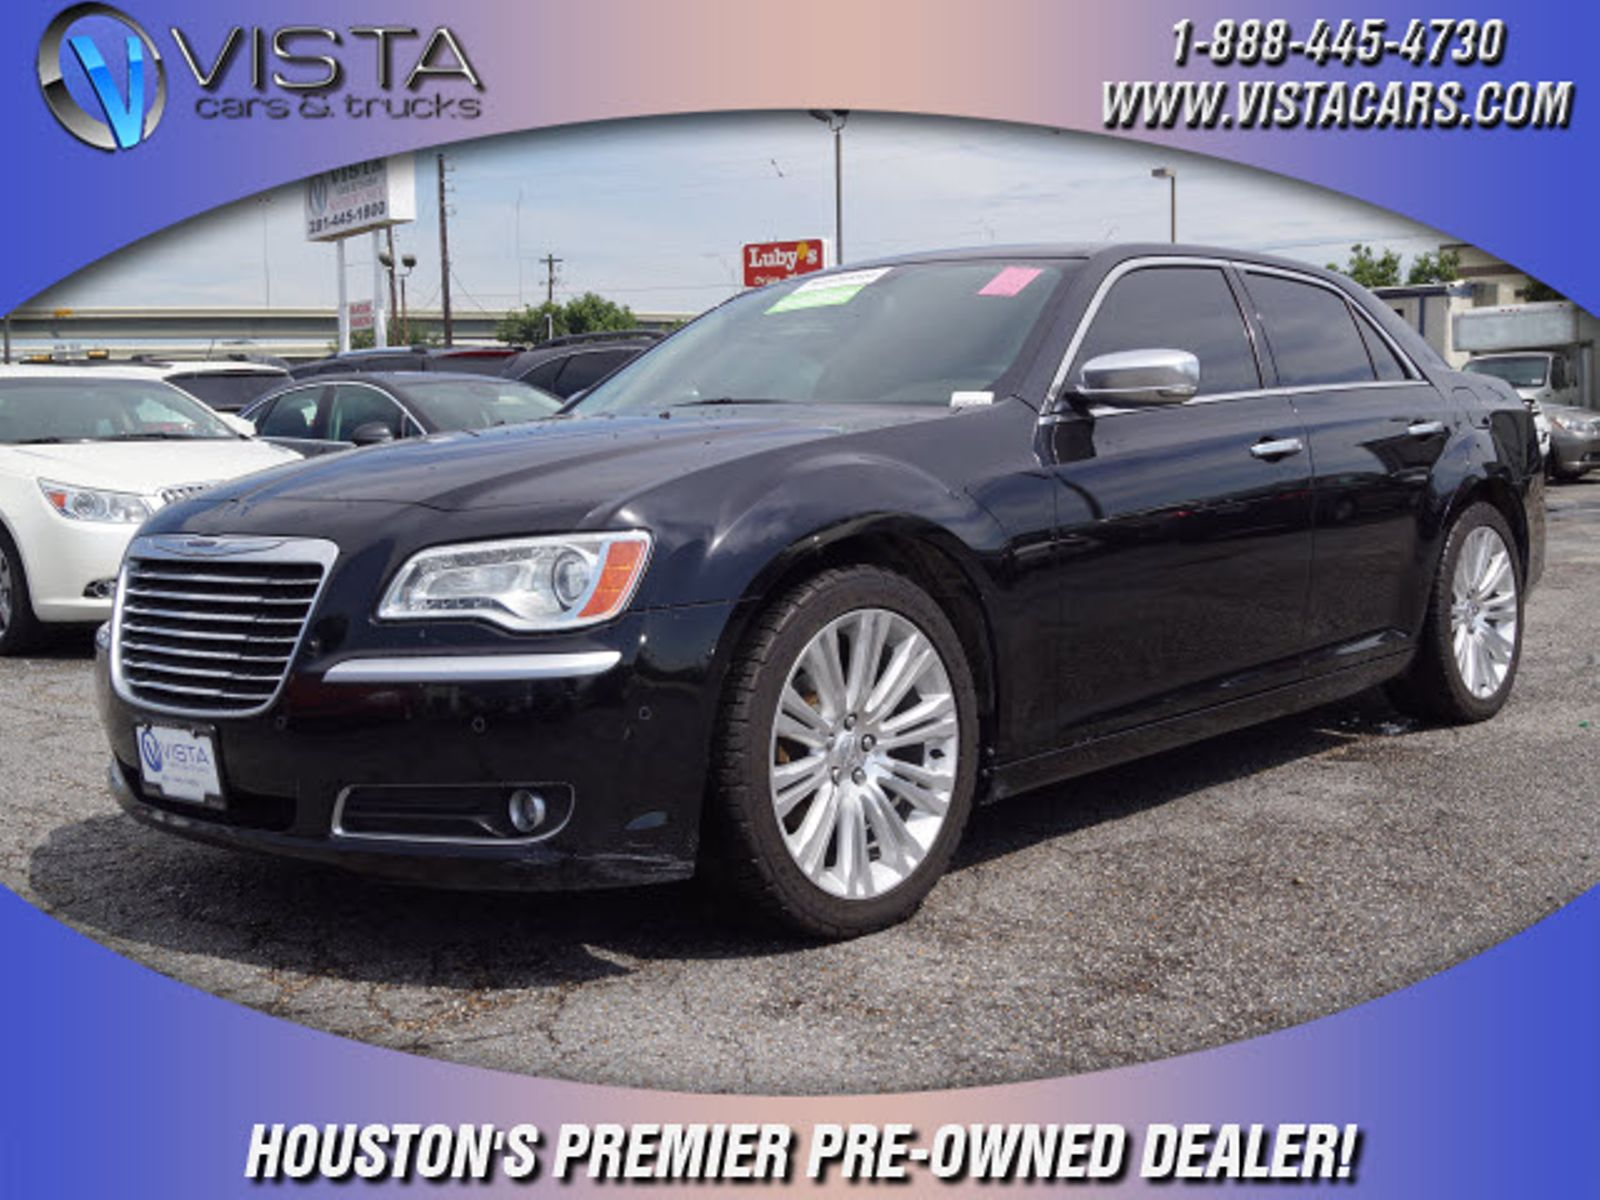 2013 chrysler 300 luxury series city texas vista cars and trucks. Black Bedroom Furniture Sets. Home Design Ideas